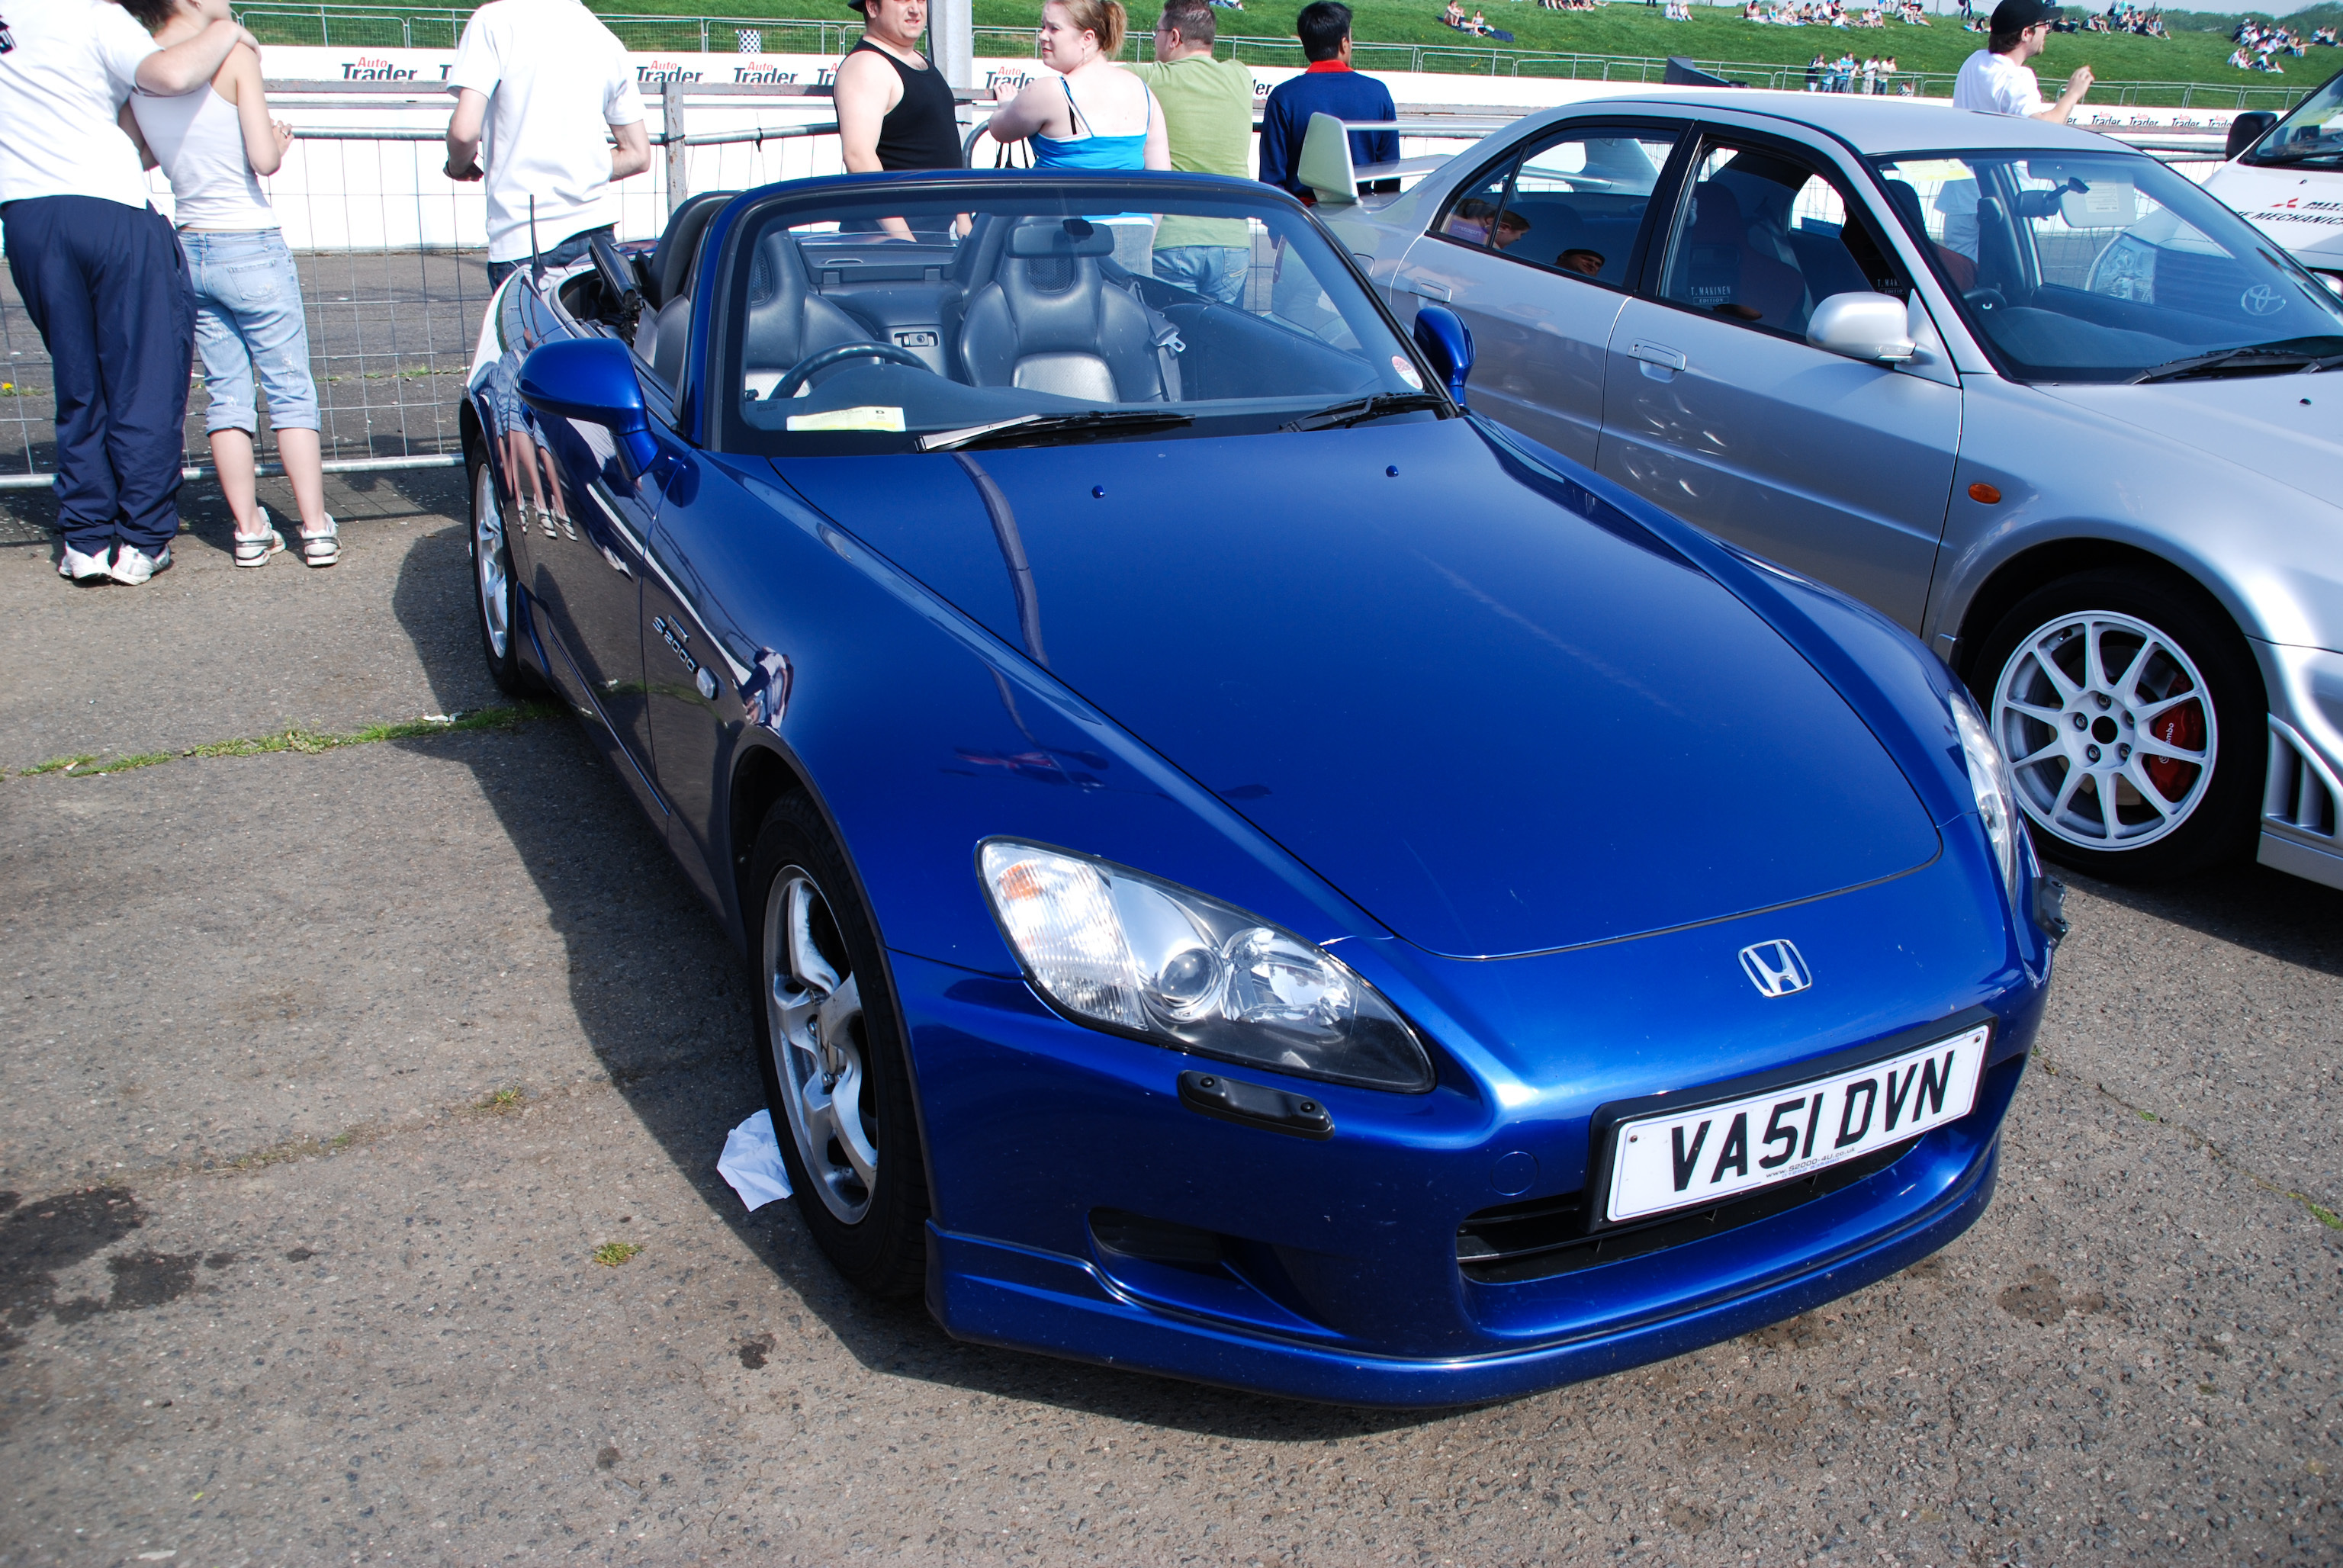 used cars | used cars for sale near me and car shows near ...